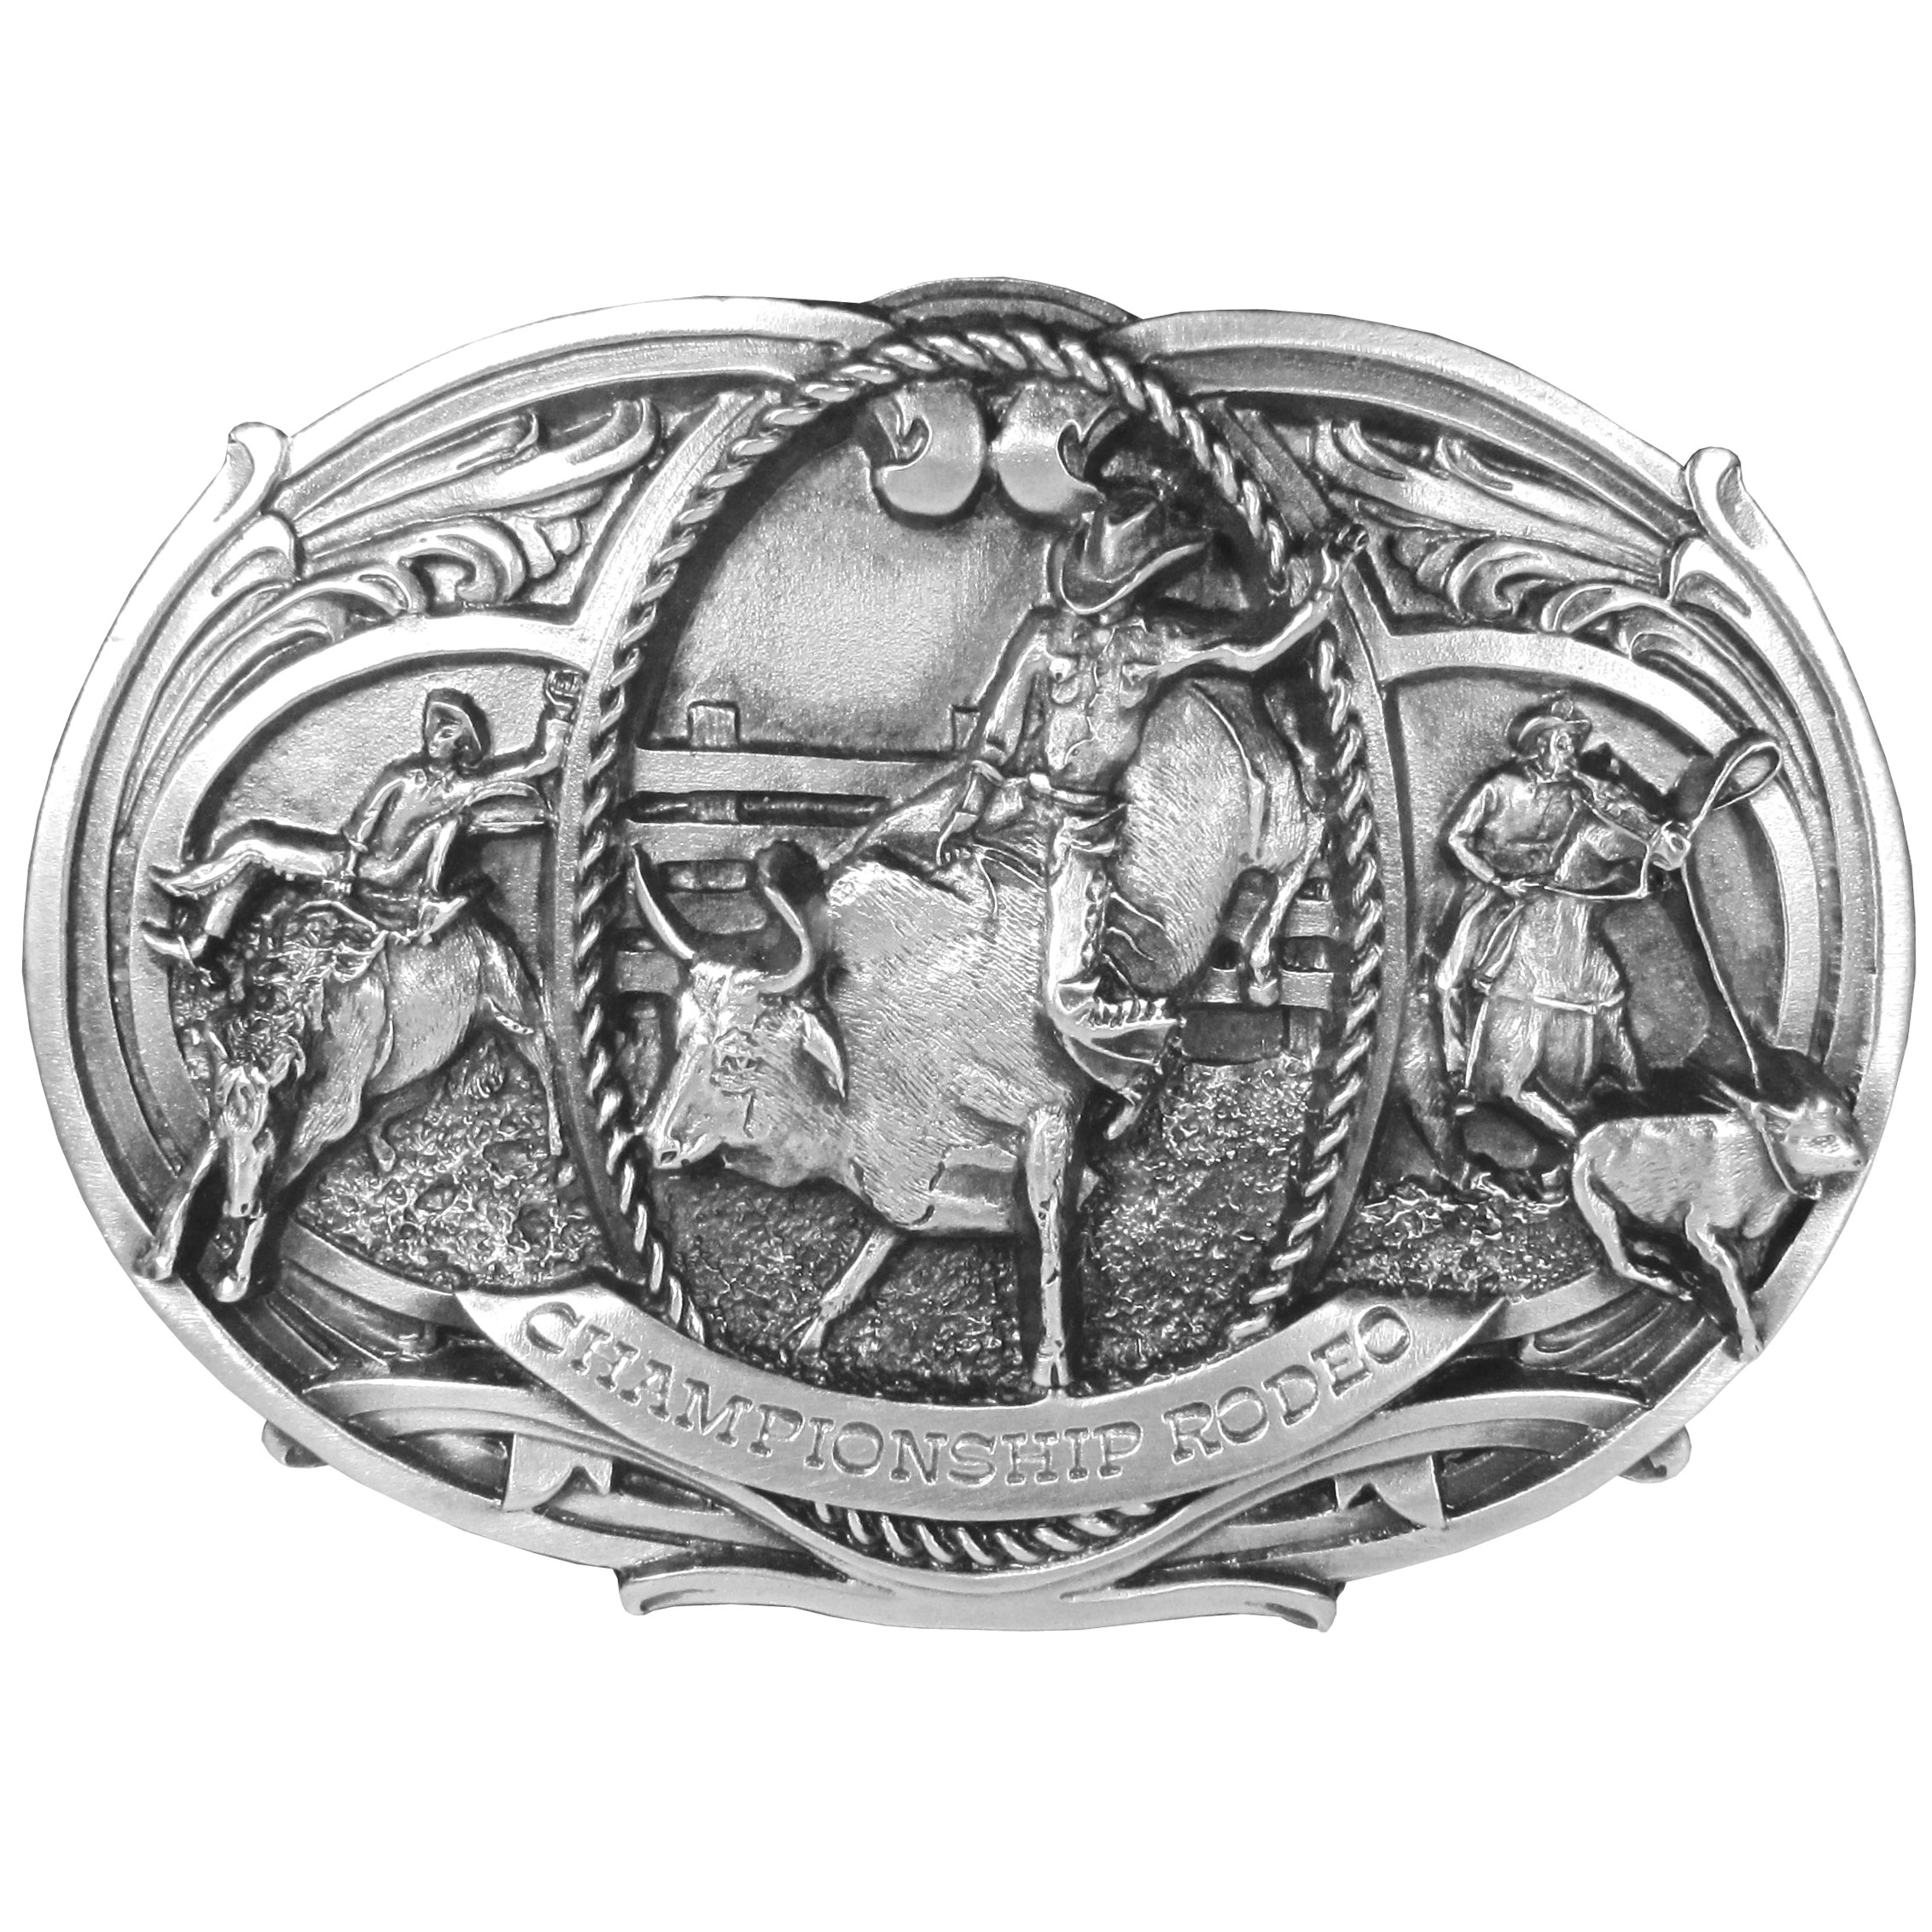 "Championship Rodeo Antiqued Belt Buckle - This large belt buckle celebrates Championship Rodeo with the words written on the bottom and a cowoby riding a bronco, Bull-riding and calf roping in an arena surrounded by design detail and rope. On the back are the words, Feats of skill and superb showmanship are watched with crowd roaring enthusiasm at rodeos across the country. Bronco riding is one of the most spectacular events, Spectators are also moved by all of the various shows of calf roping, bulldogging, and bull-riding and steer roping, along with other special events.  Buckle measures 5-1/4"" x 3-1/4""."